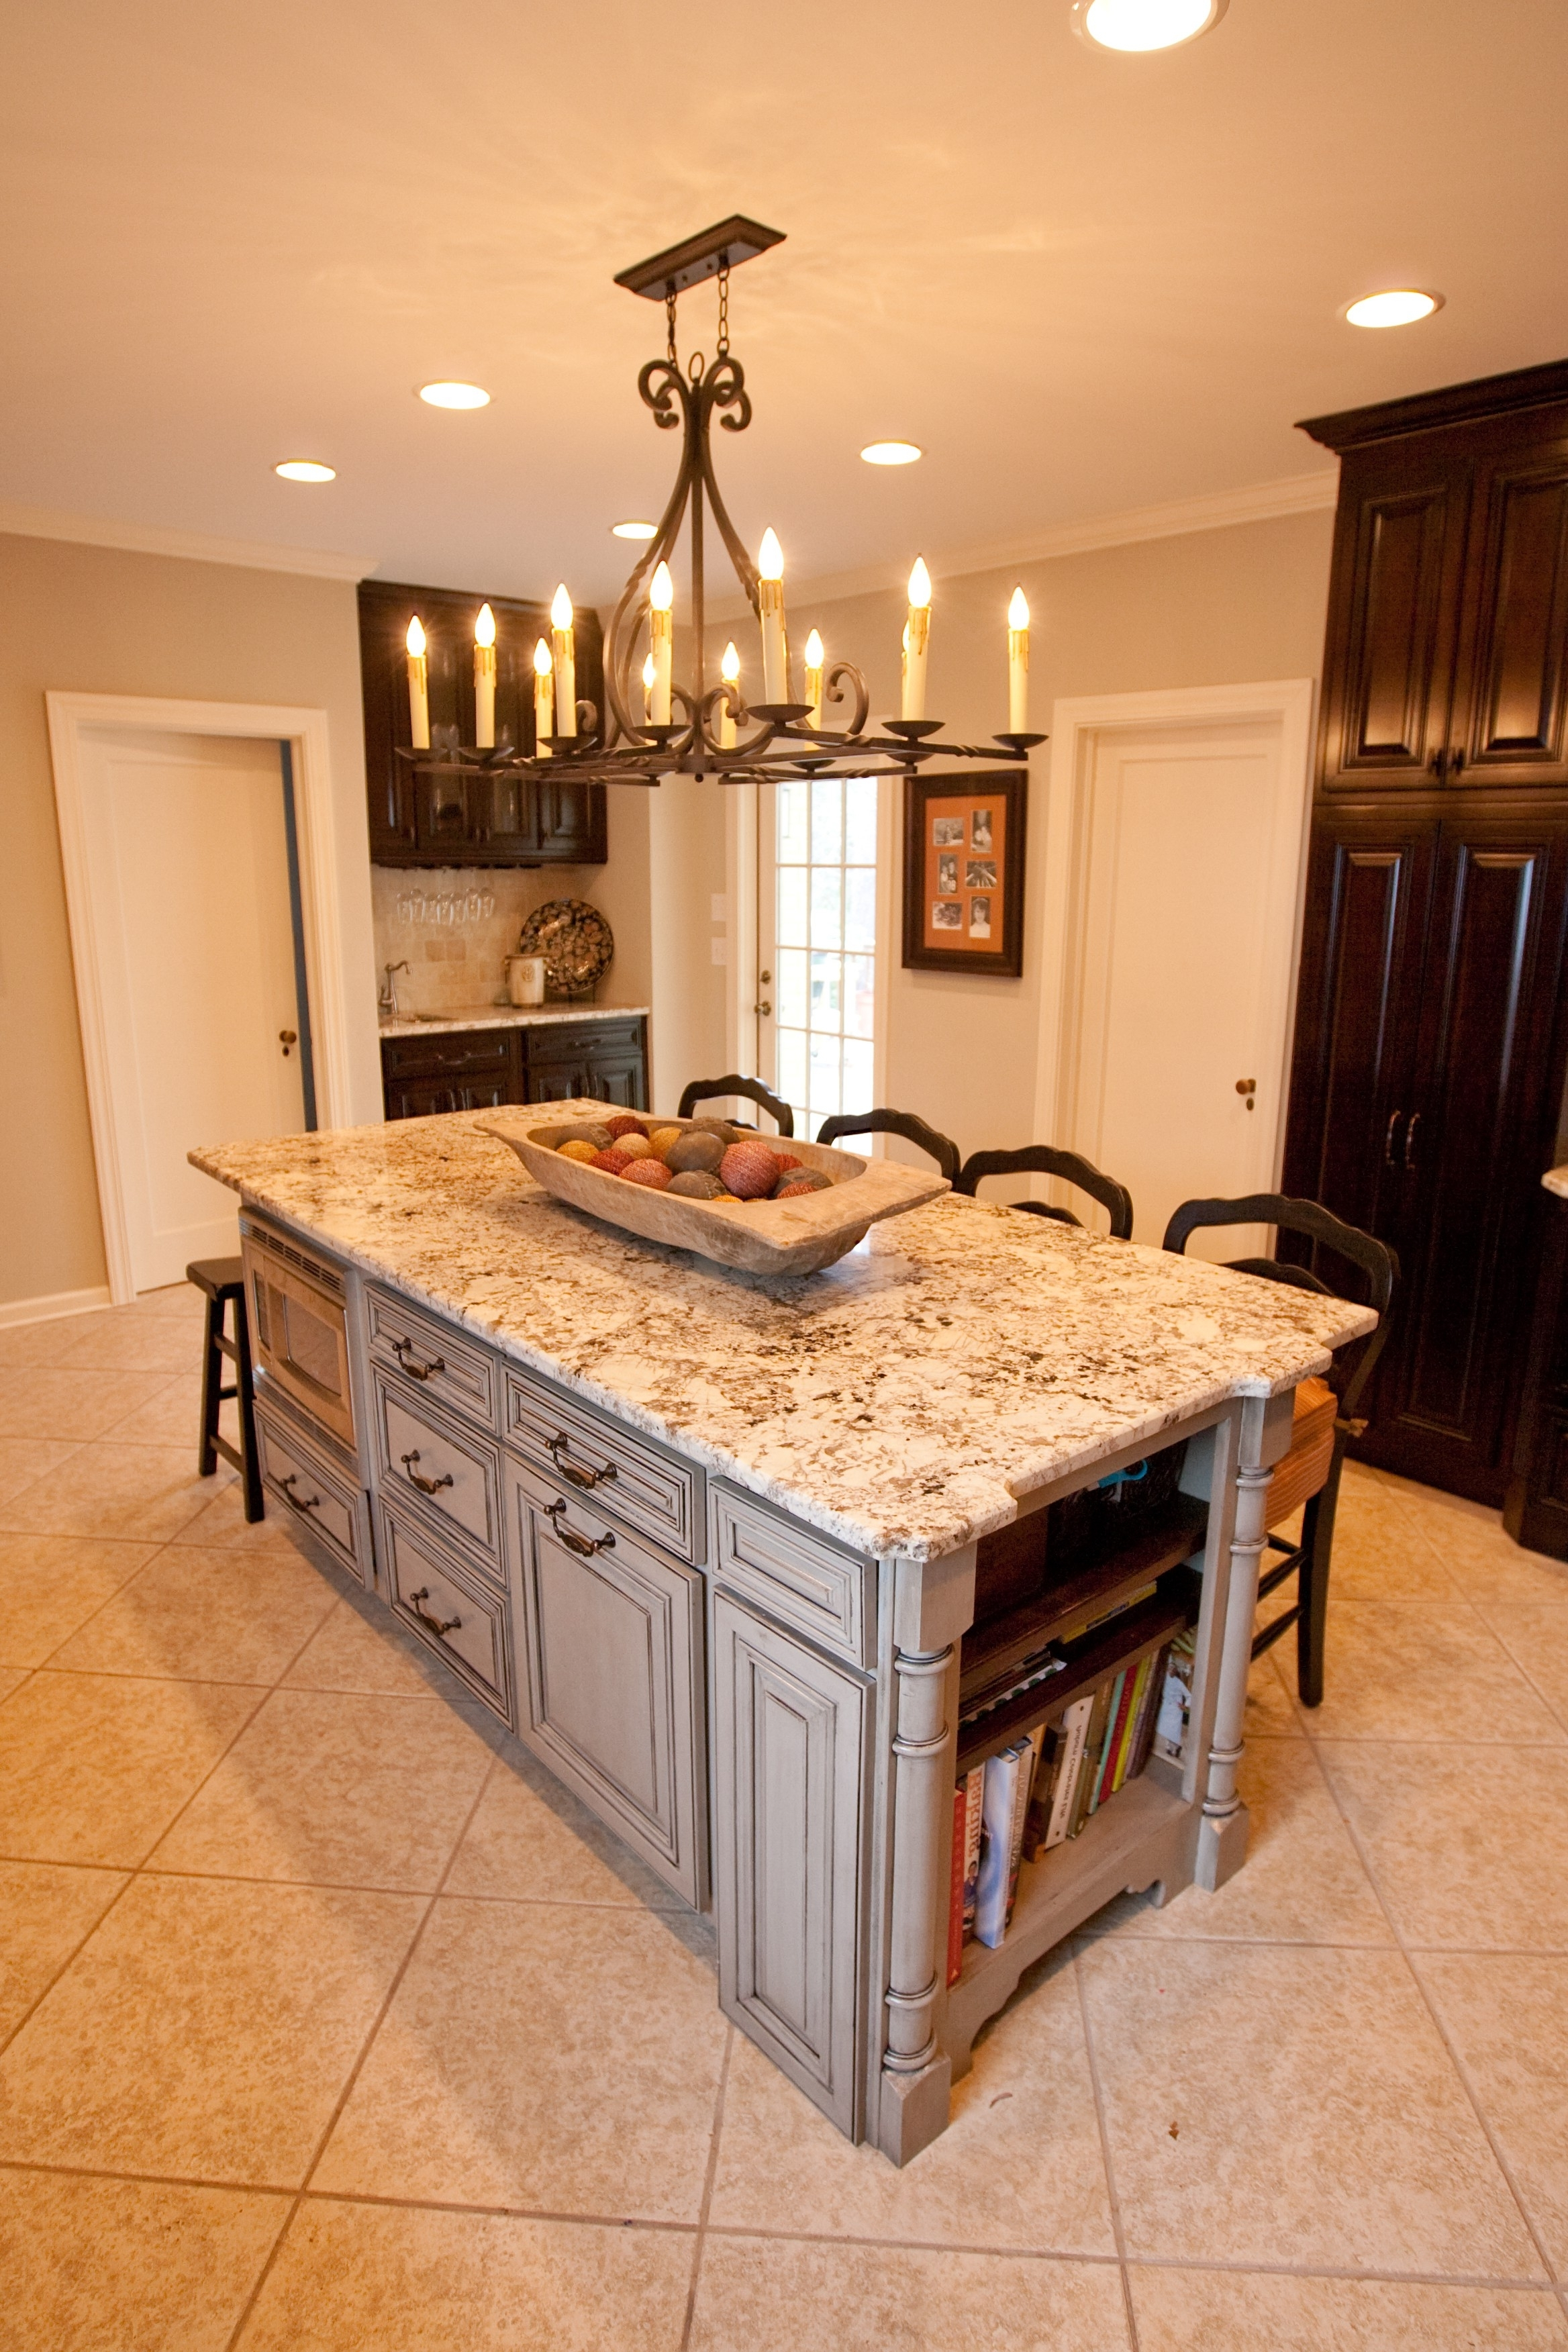 Current Beautiful Kitchen With Art Decor Wrought Iron And Kitchen Intended For Small Rustic Kitchen Chandeliers (View 13 of 15)